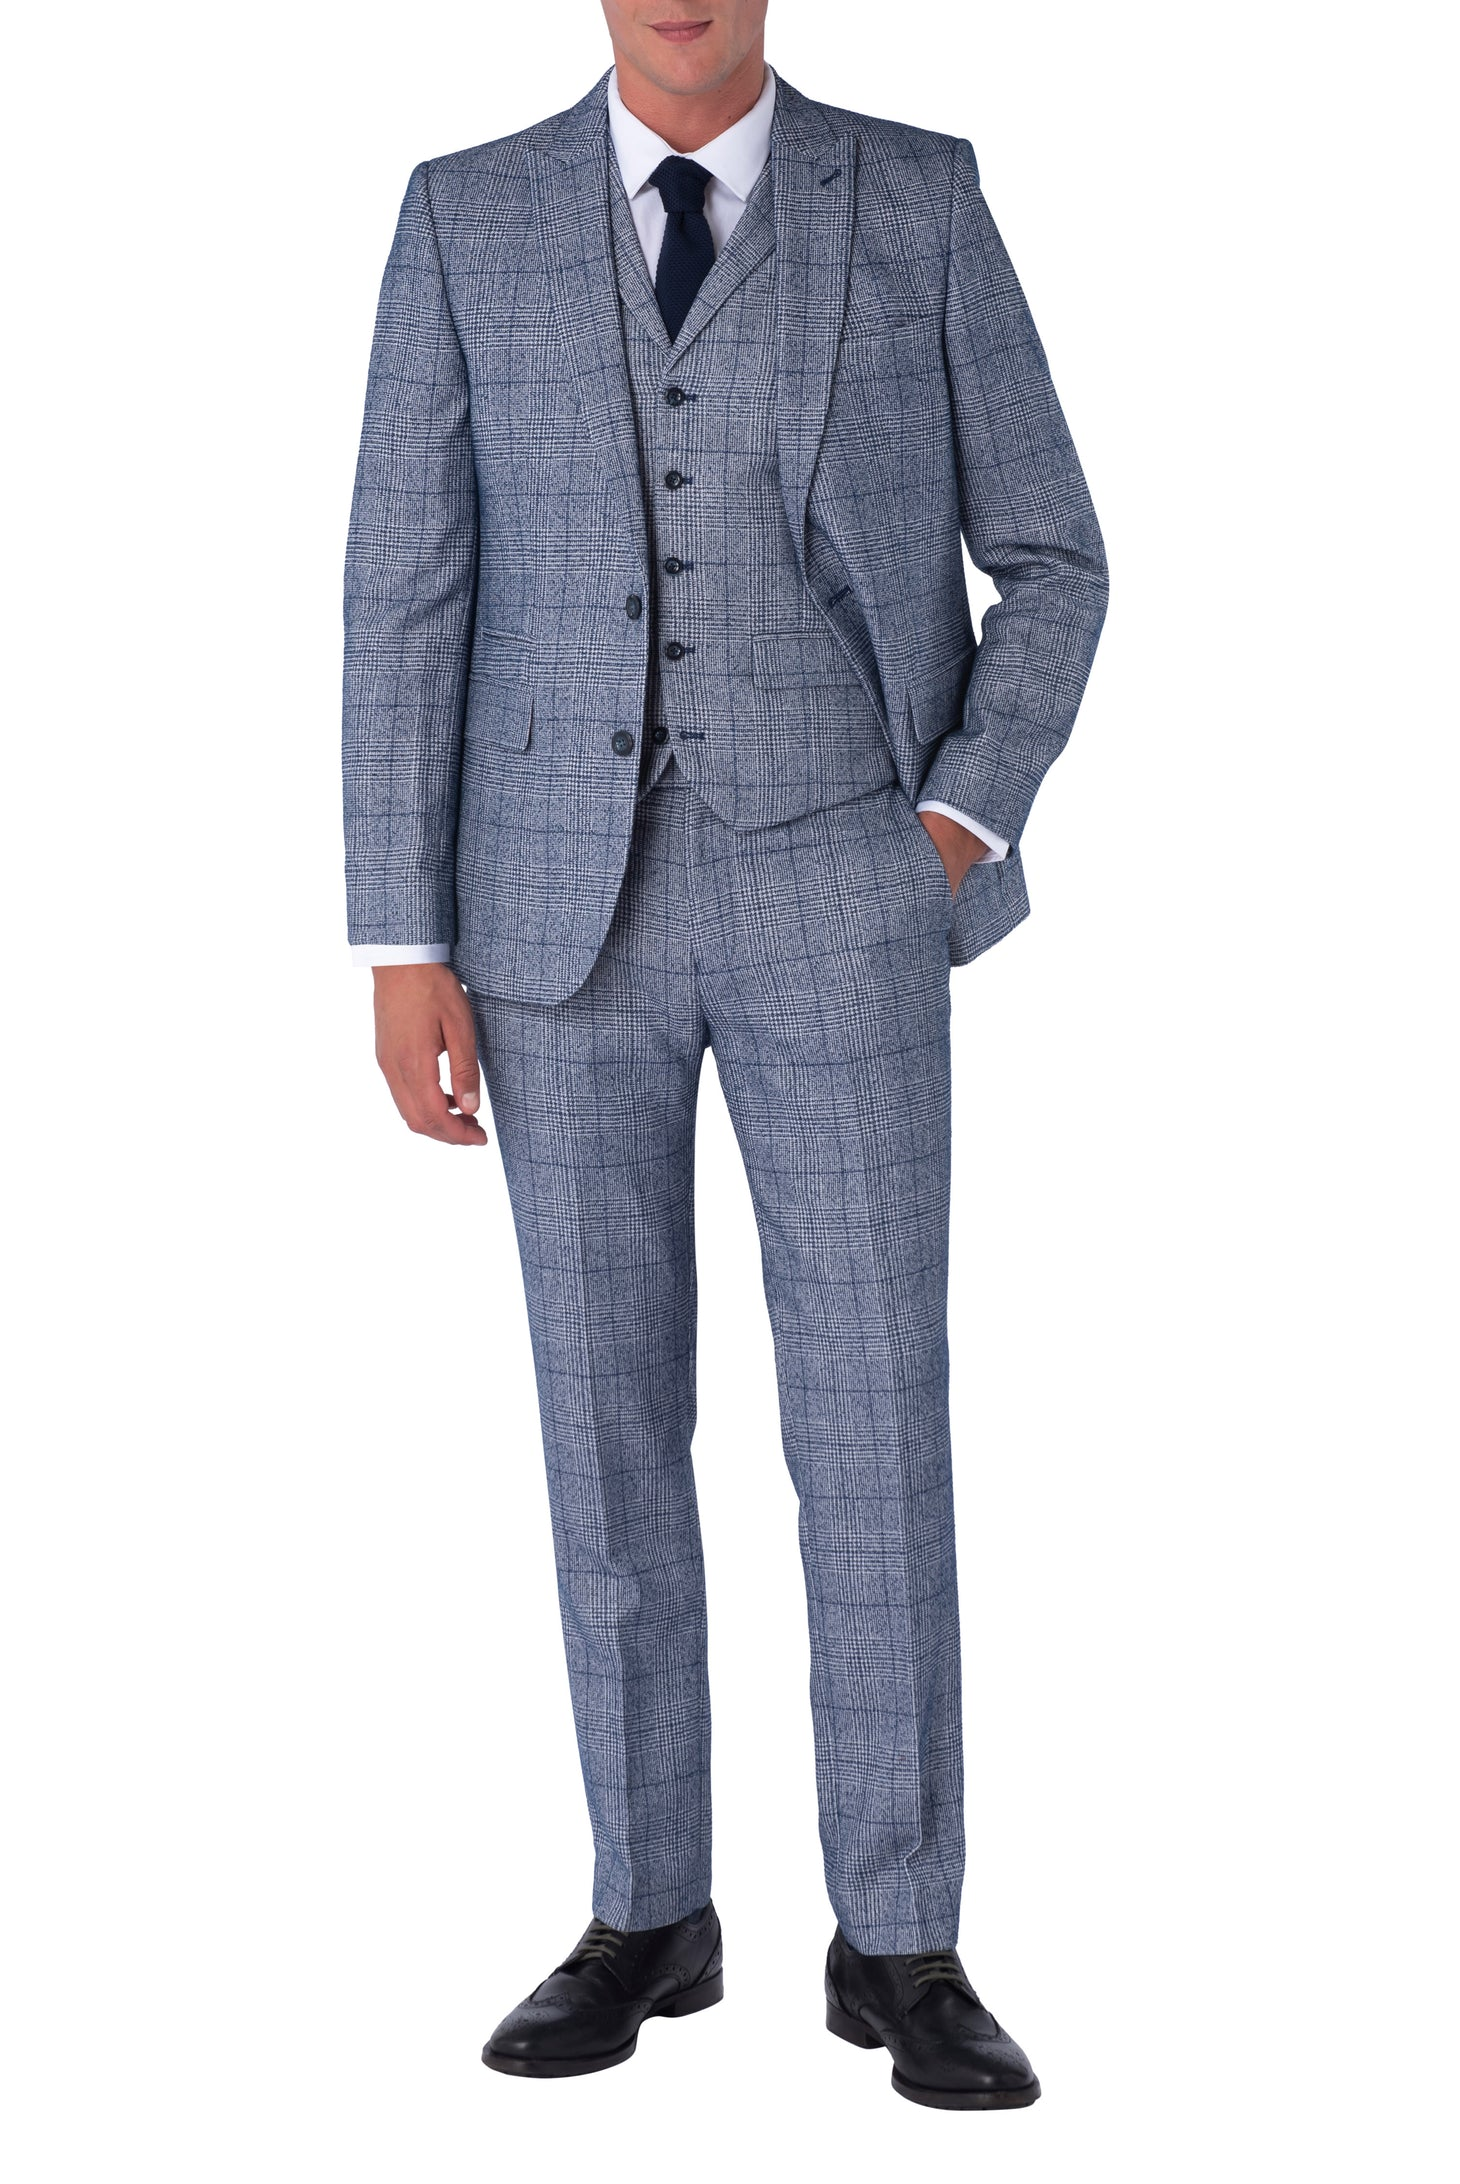 DANIEL Blue & Navy Check Three Piece Slim Fit Suit